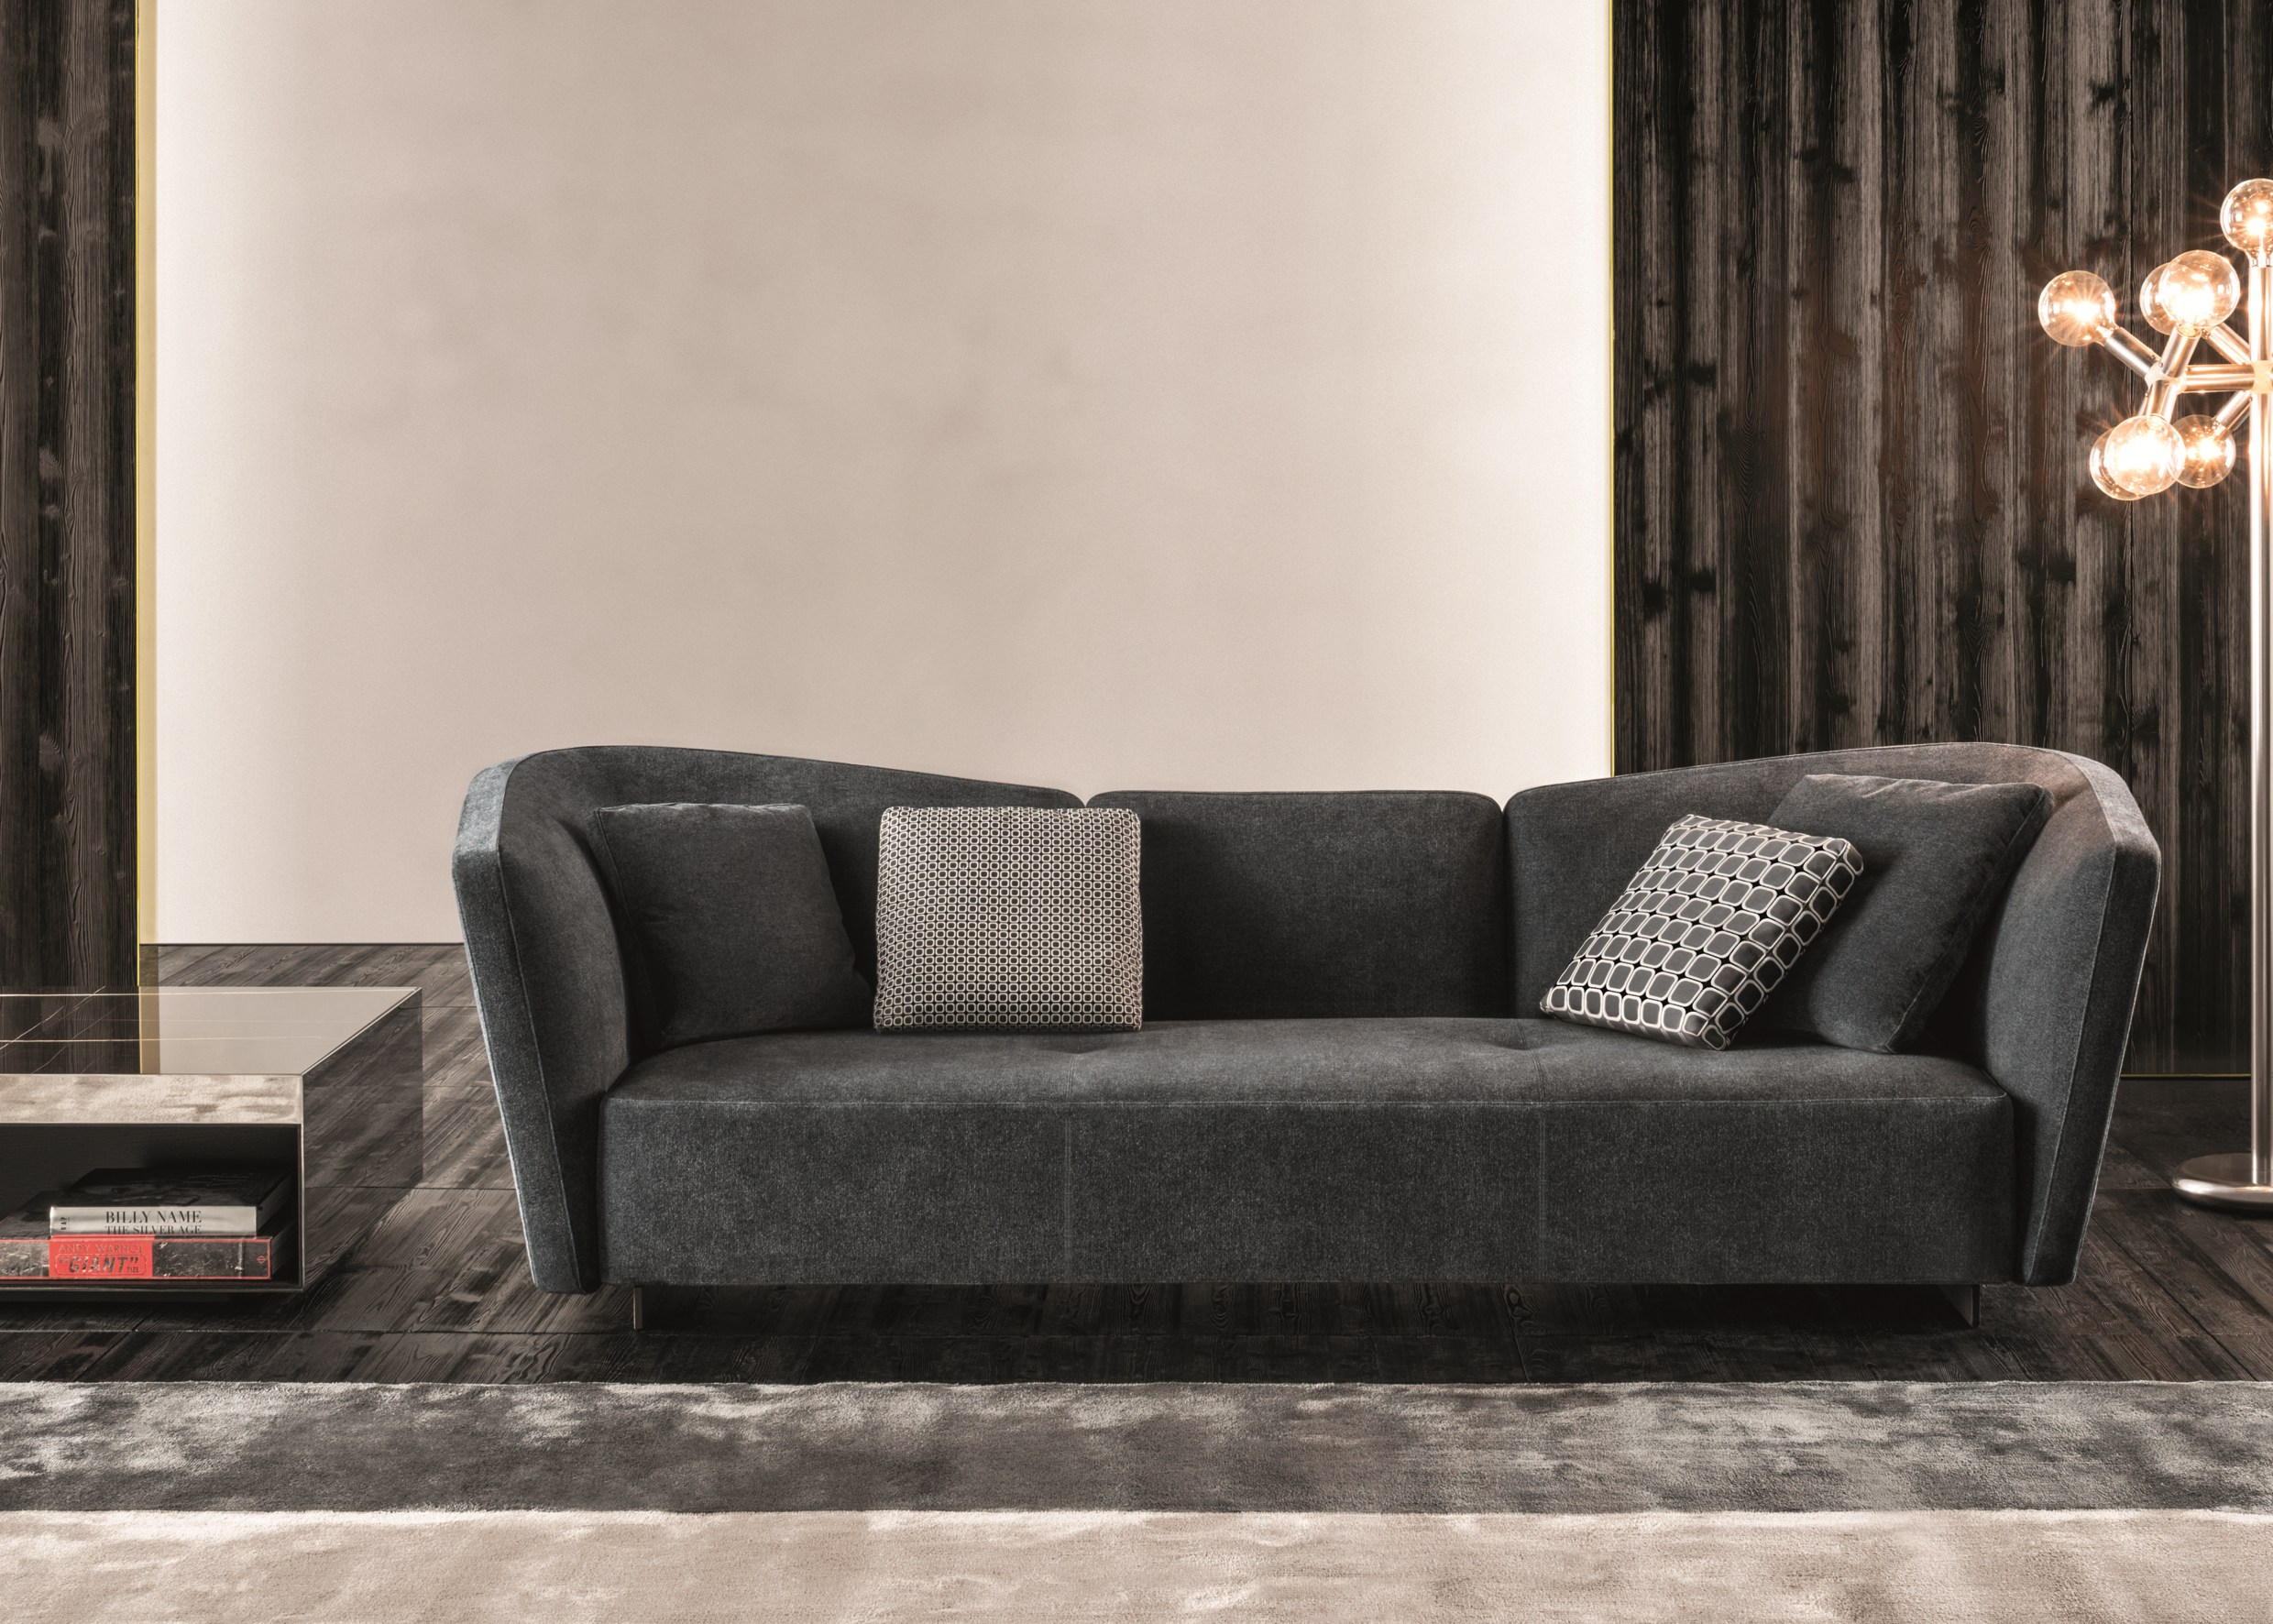 Lounge seymour by minotti design rodolfo dordoni for Minotti divani